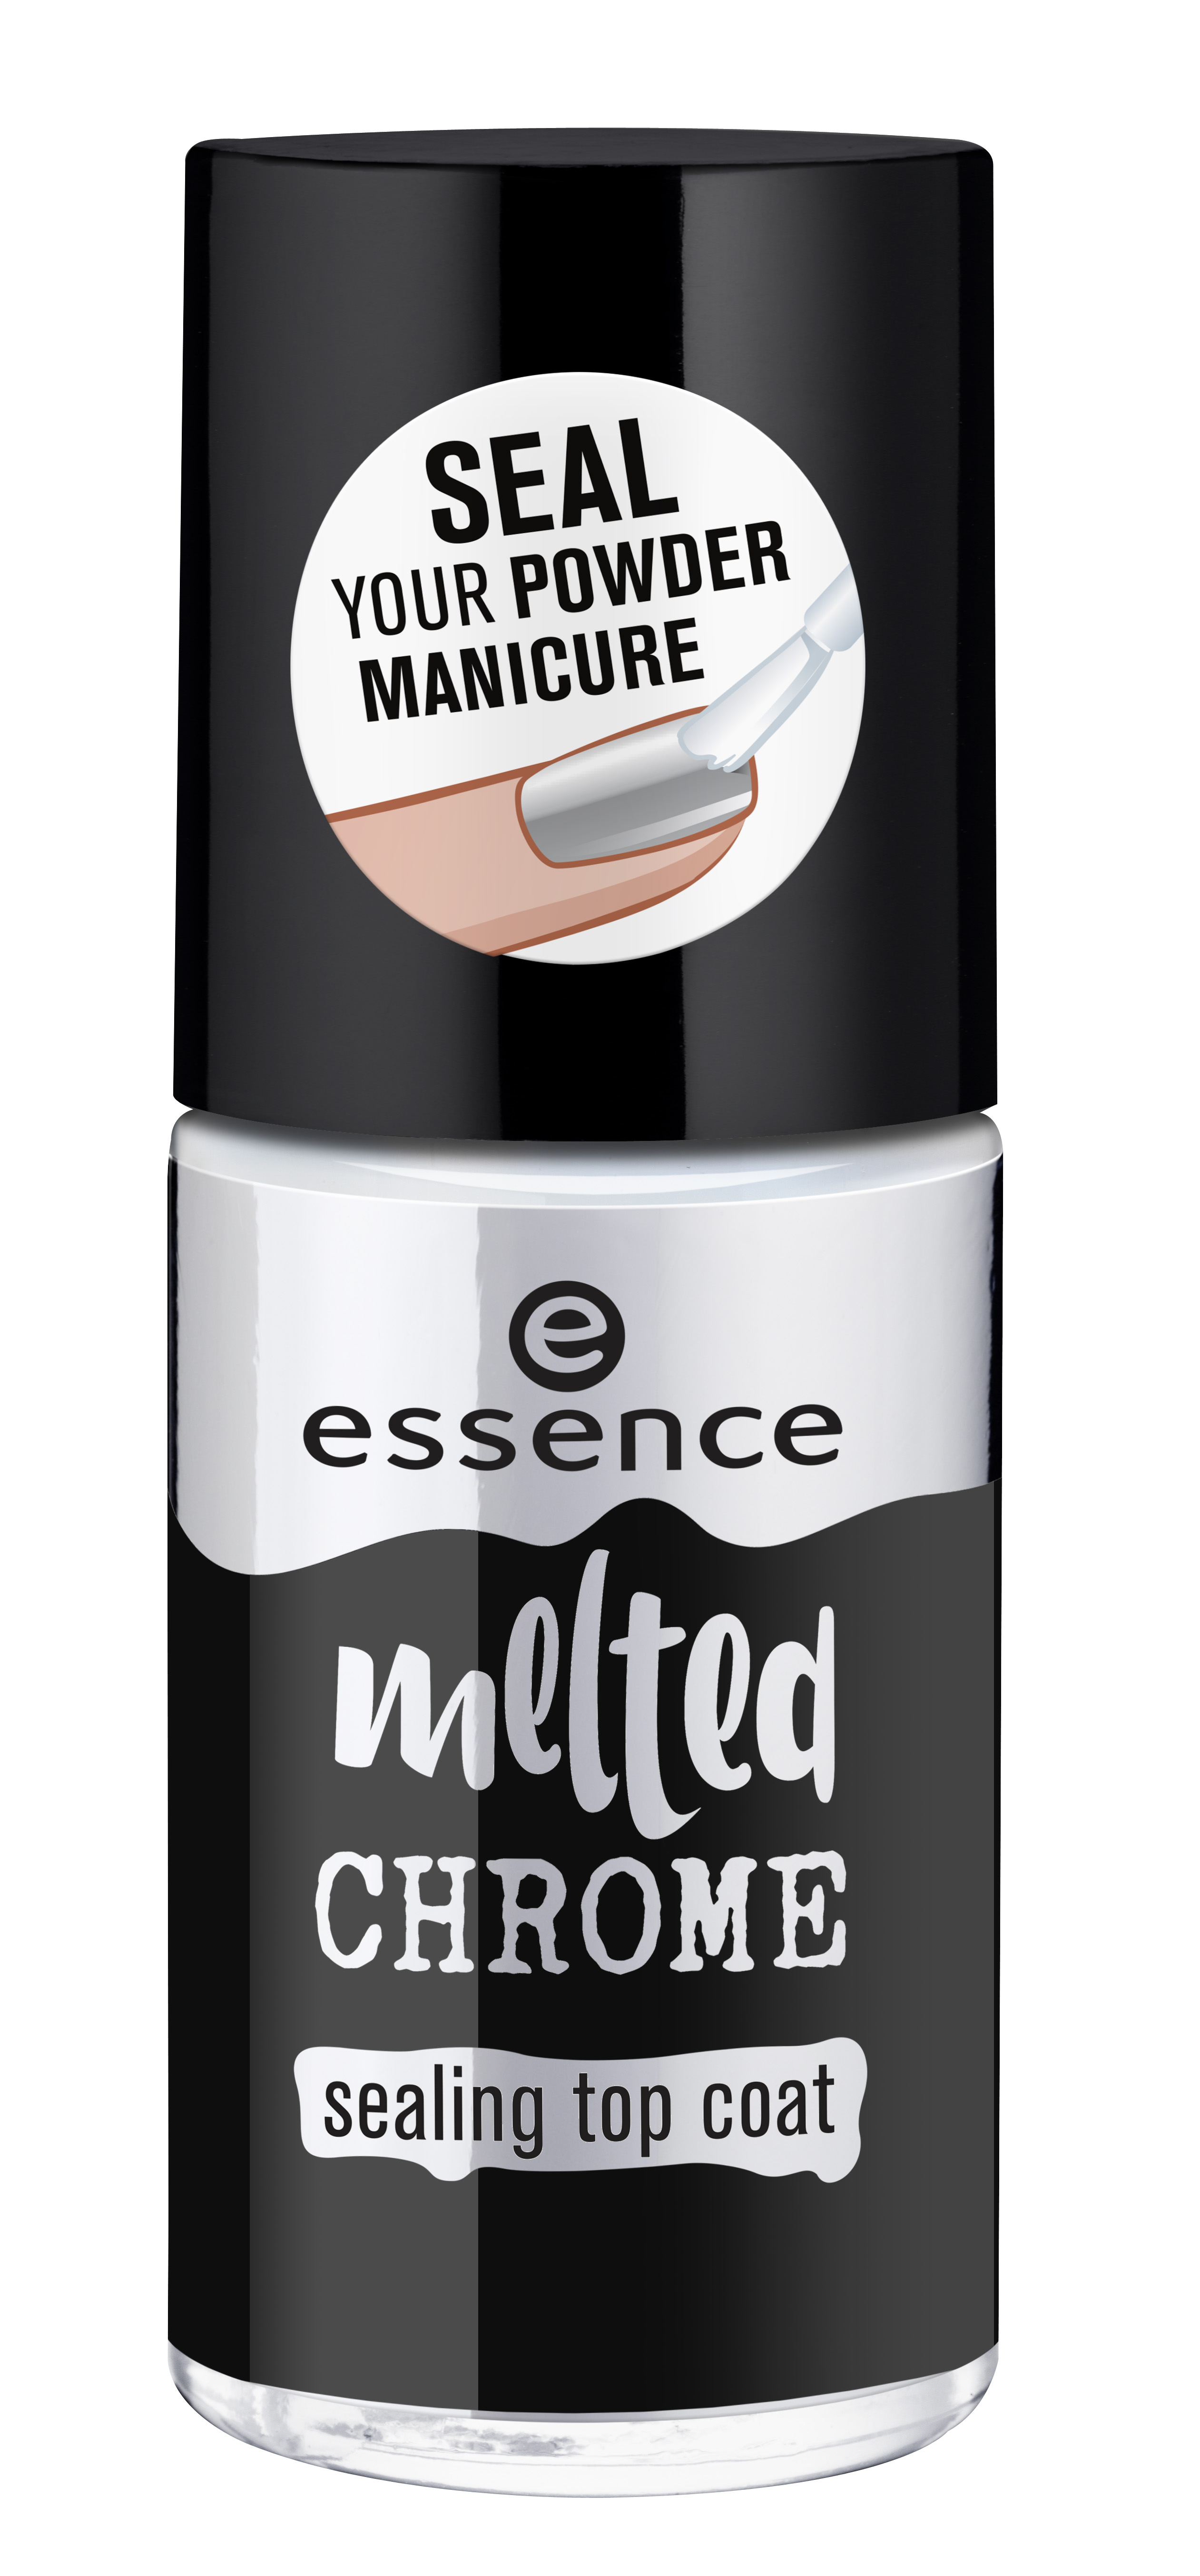 ess. melted chrome sealing top coat